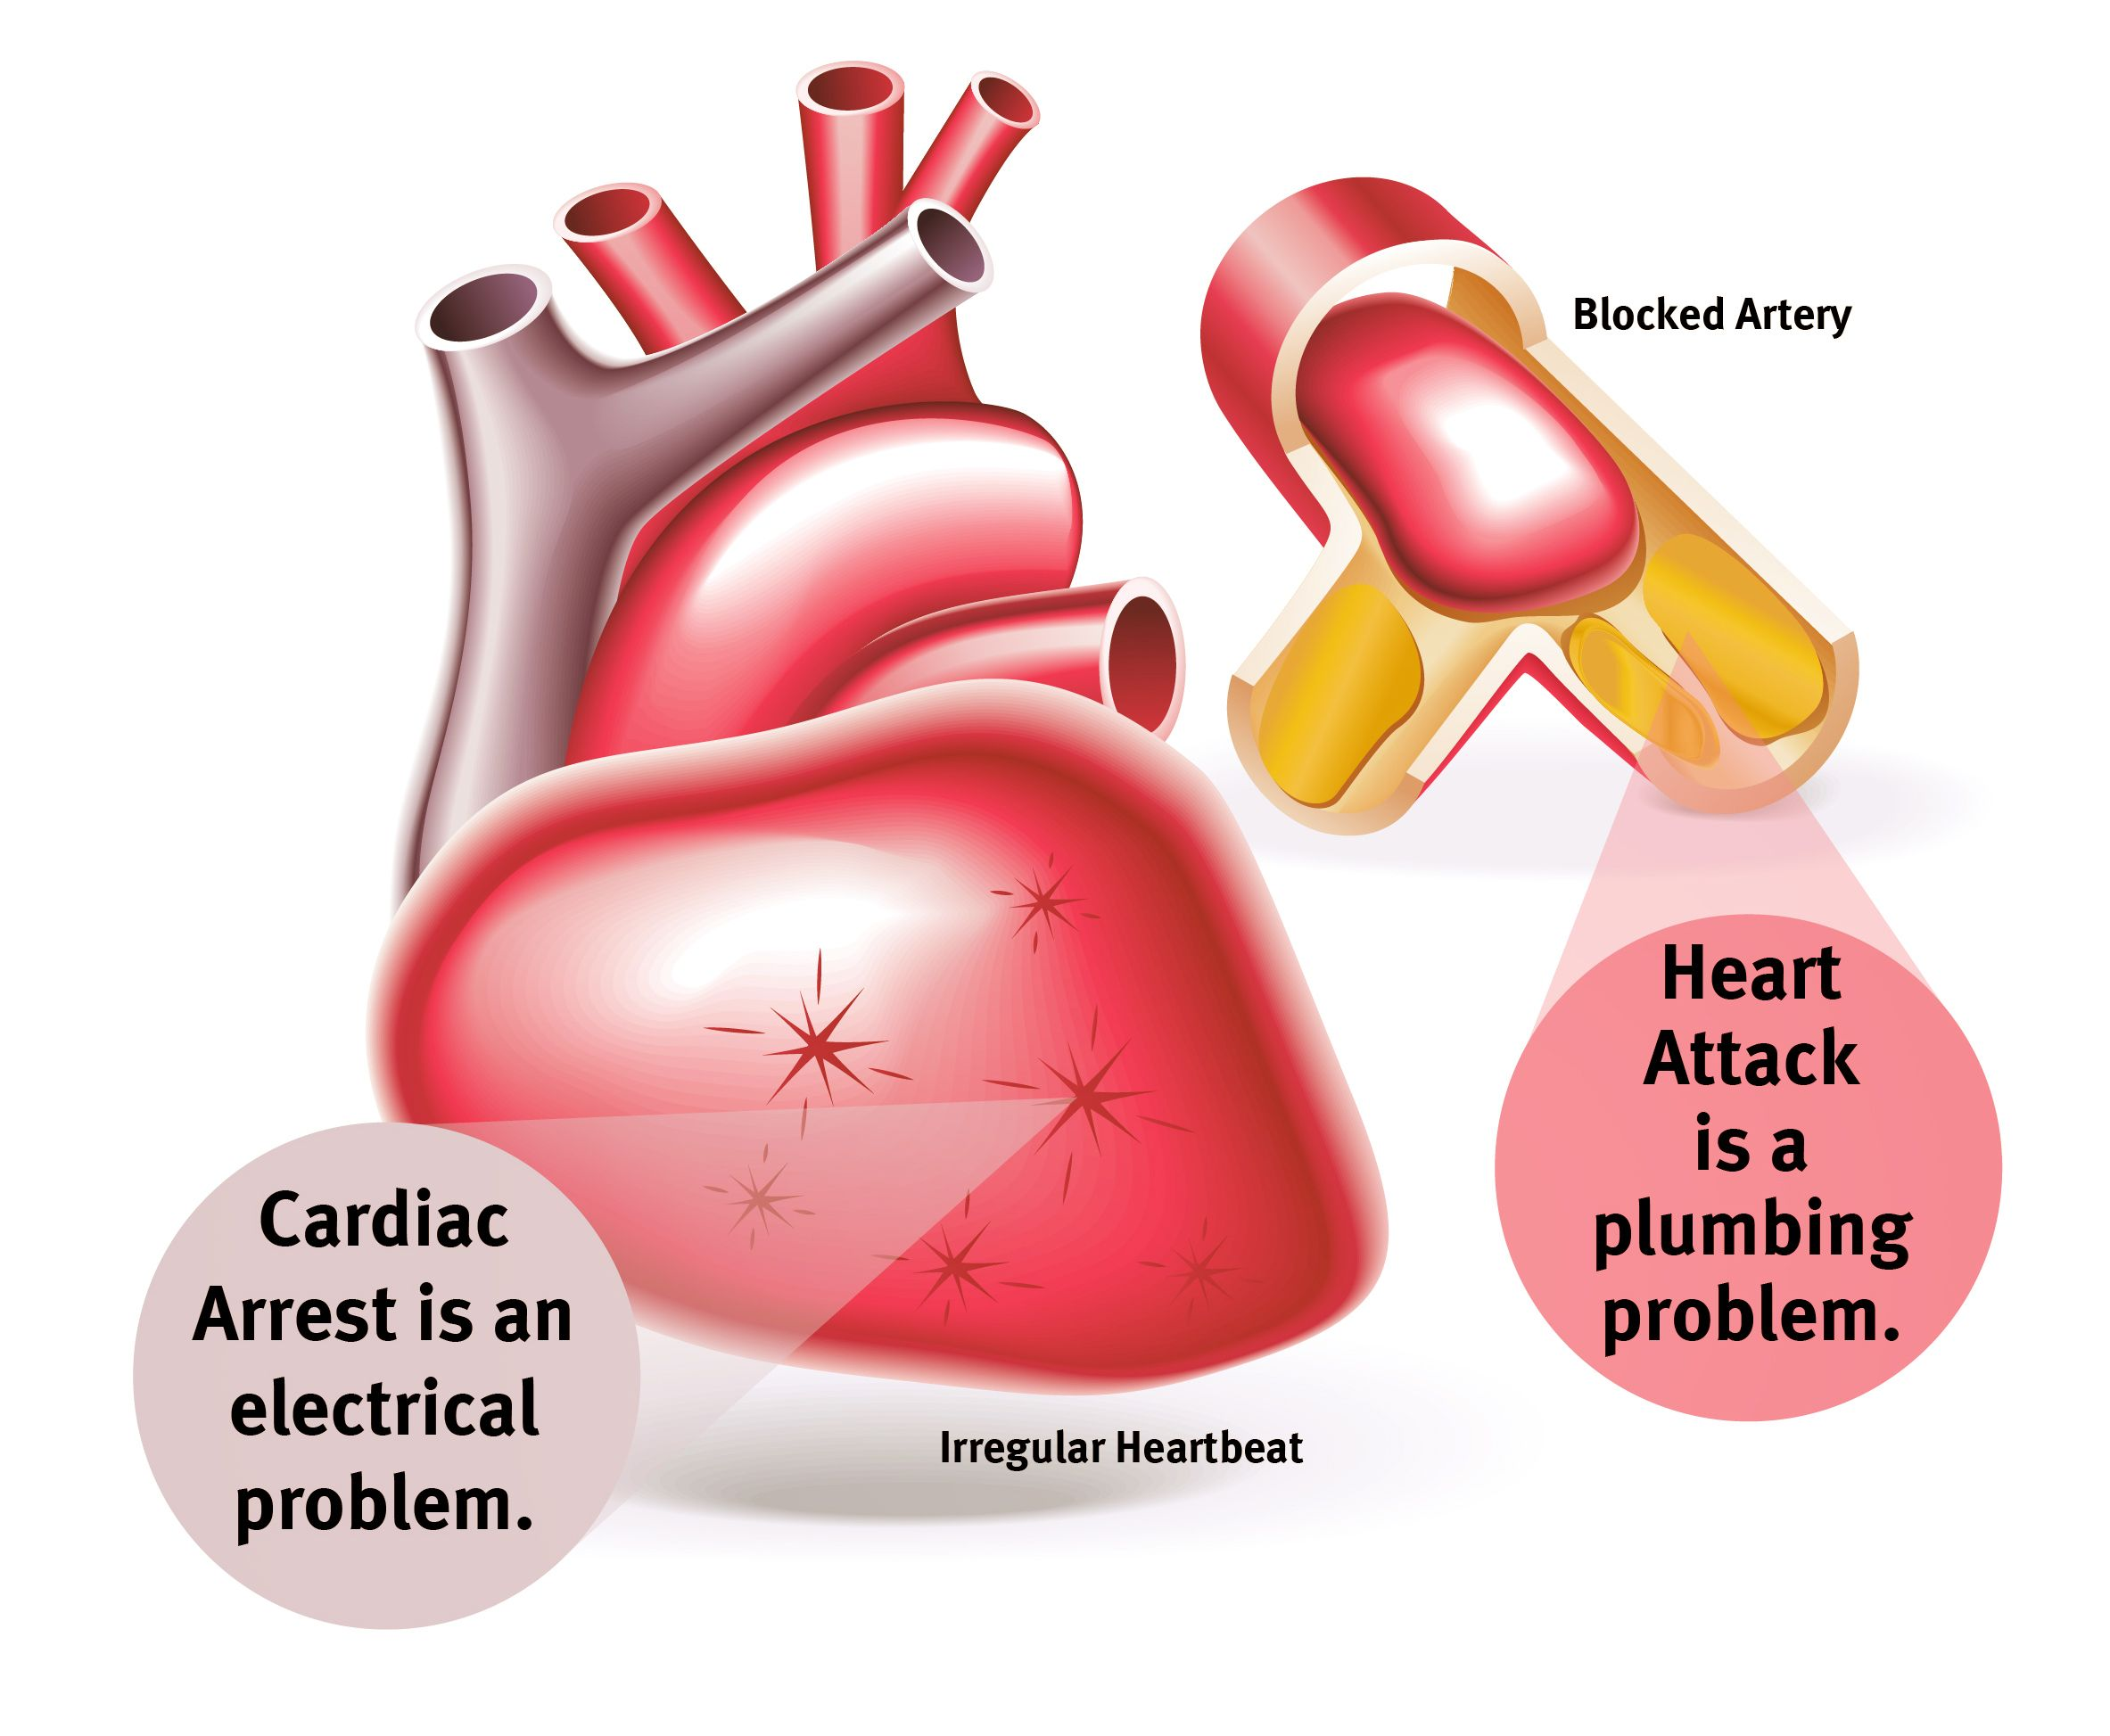 heart attack vs cardiac arrest its like a plumbing issue vs